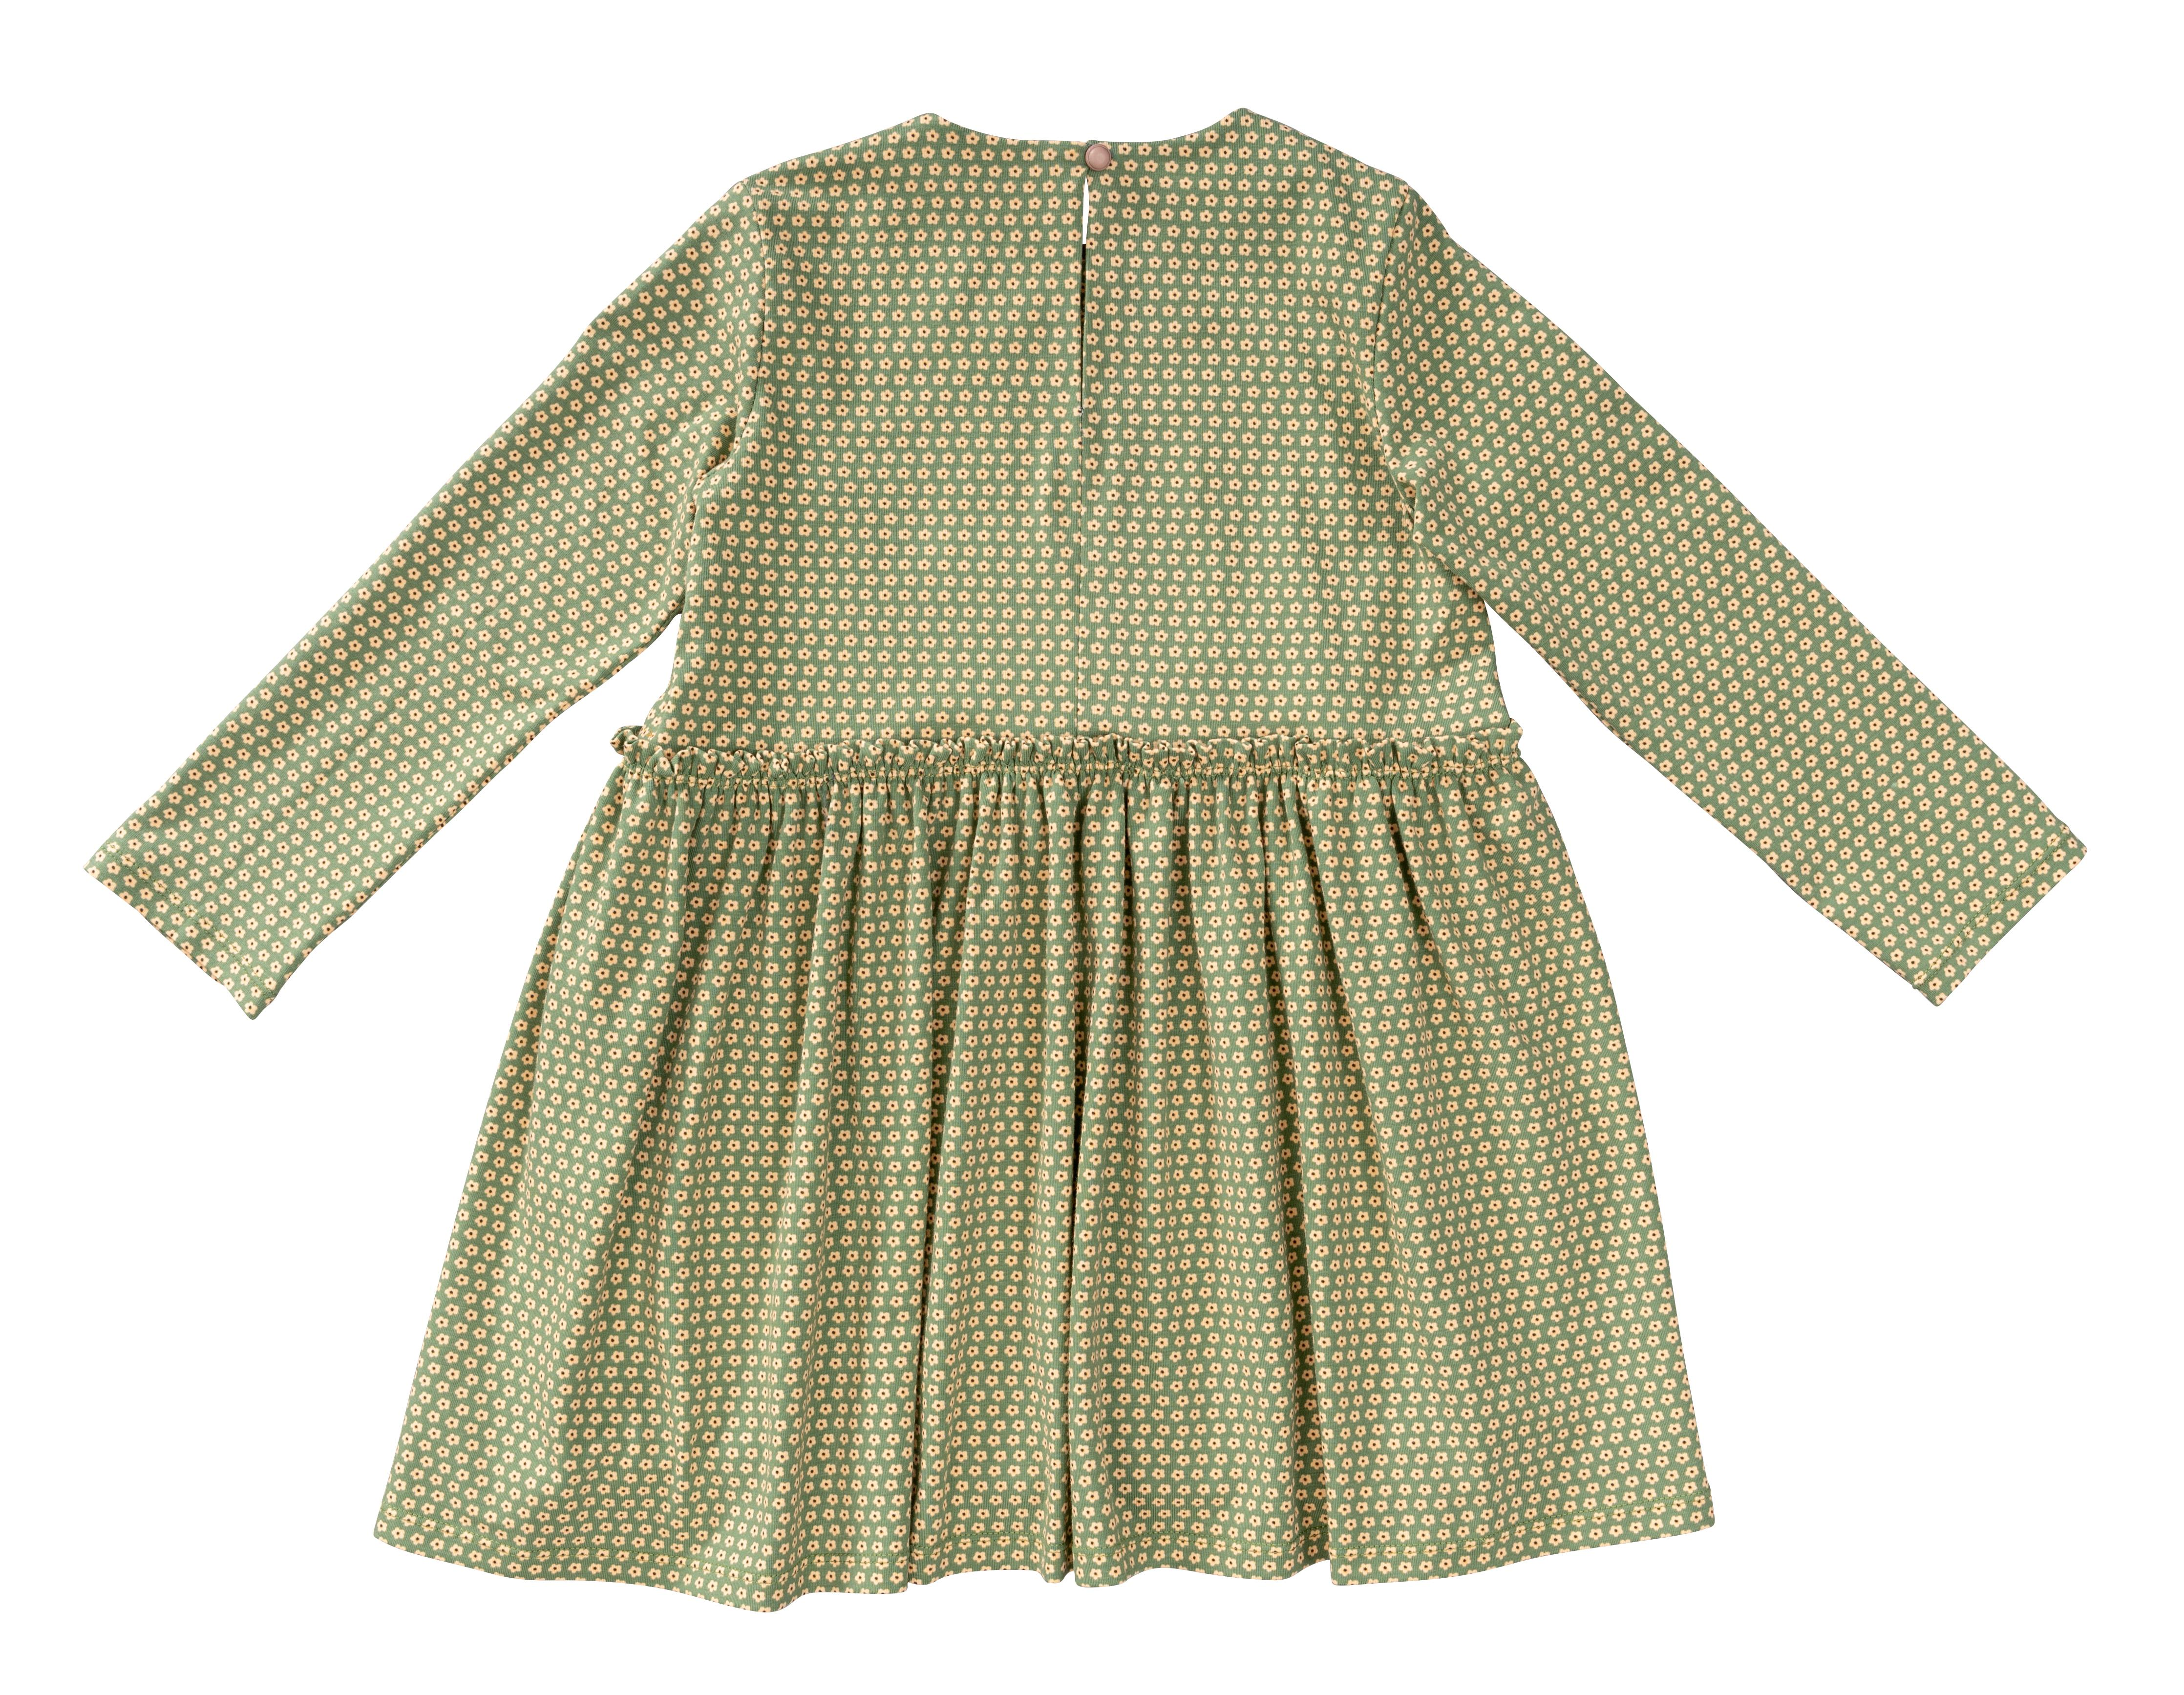 Burda 9310 Children's Dress, Pull-On with Partially Pleated Skirt or Feature Pockets